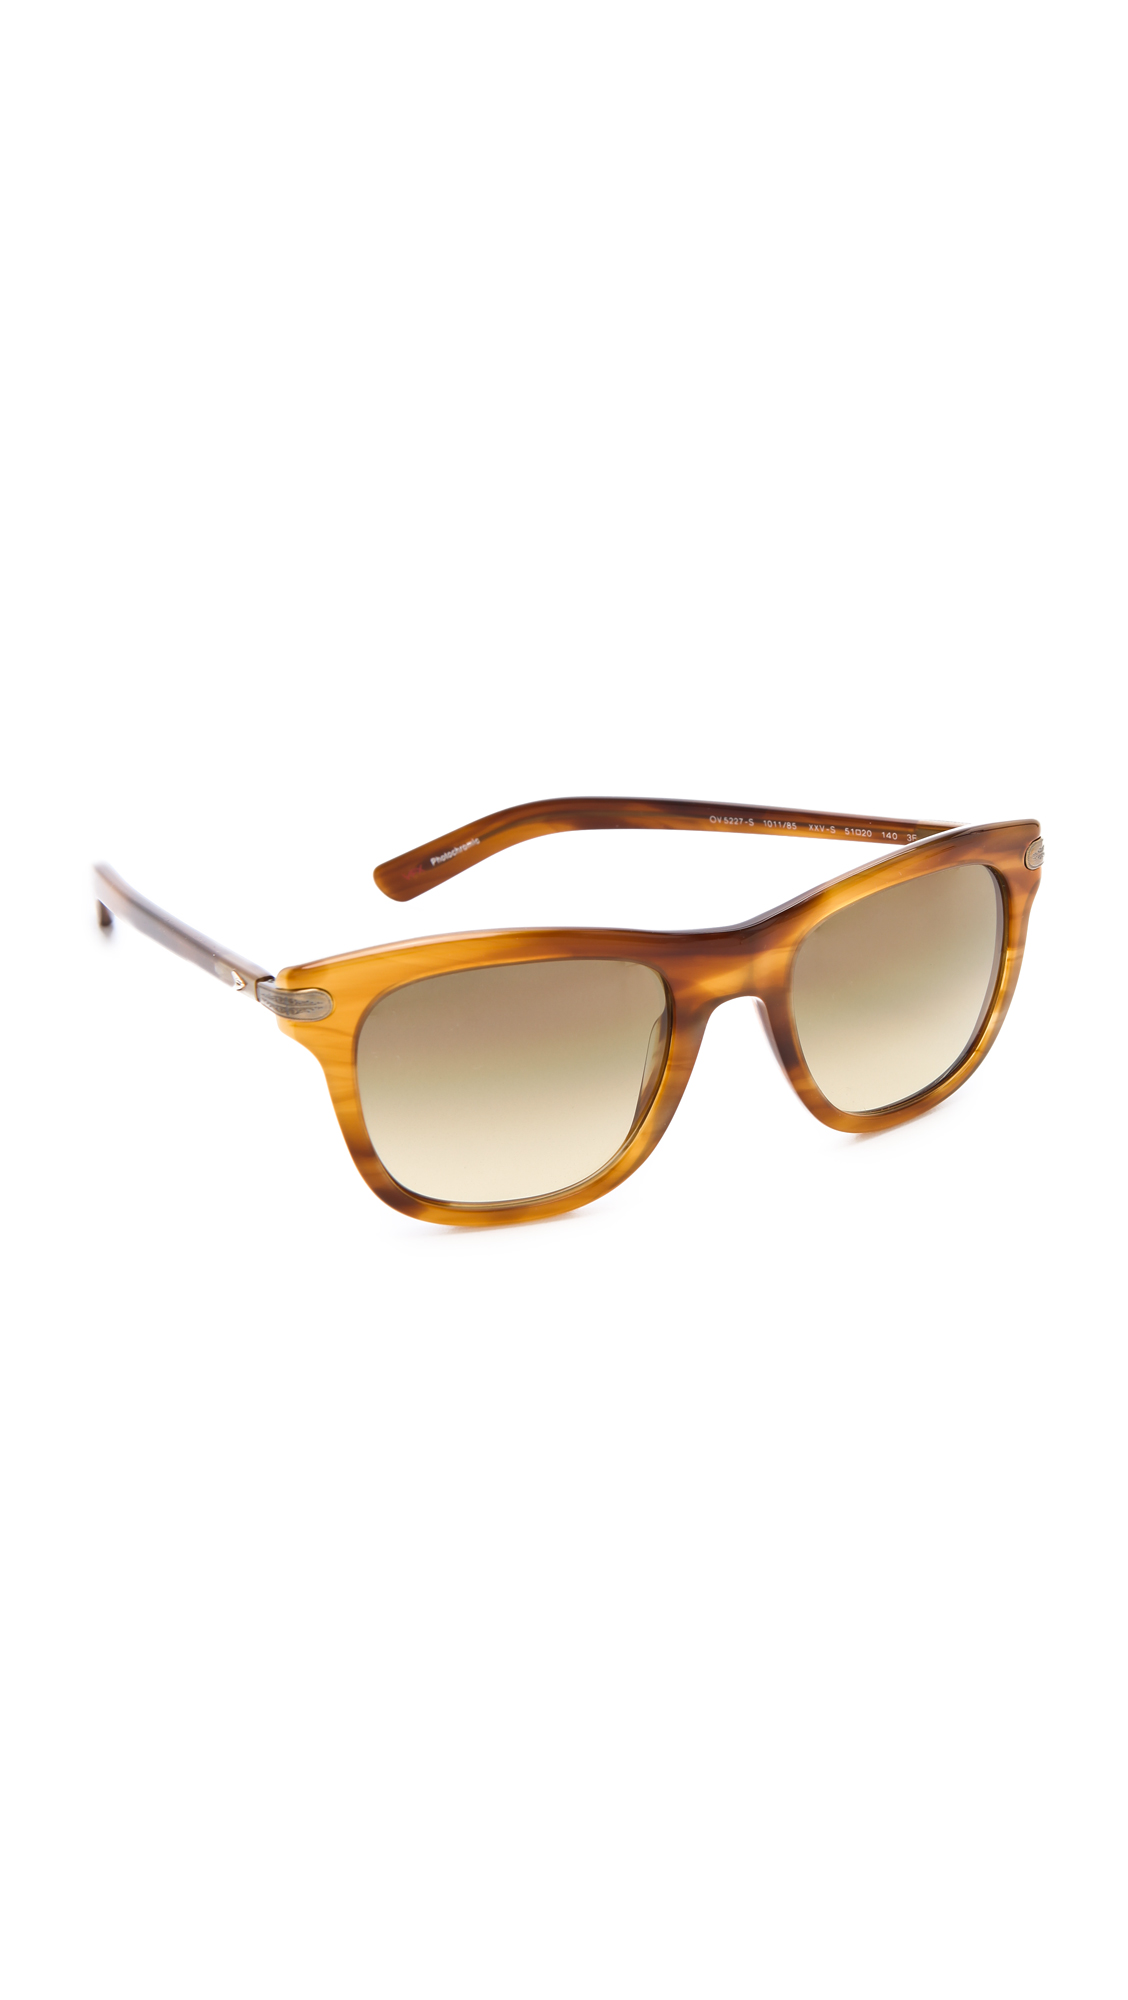 aec236fe33 Oliver Peoples 25th Anniversary Sunglasses - Bitterroot Public Library